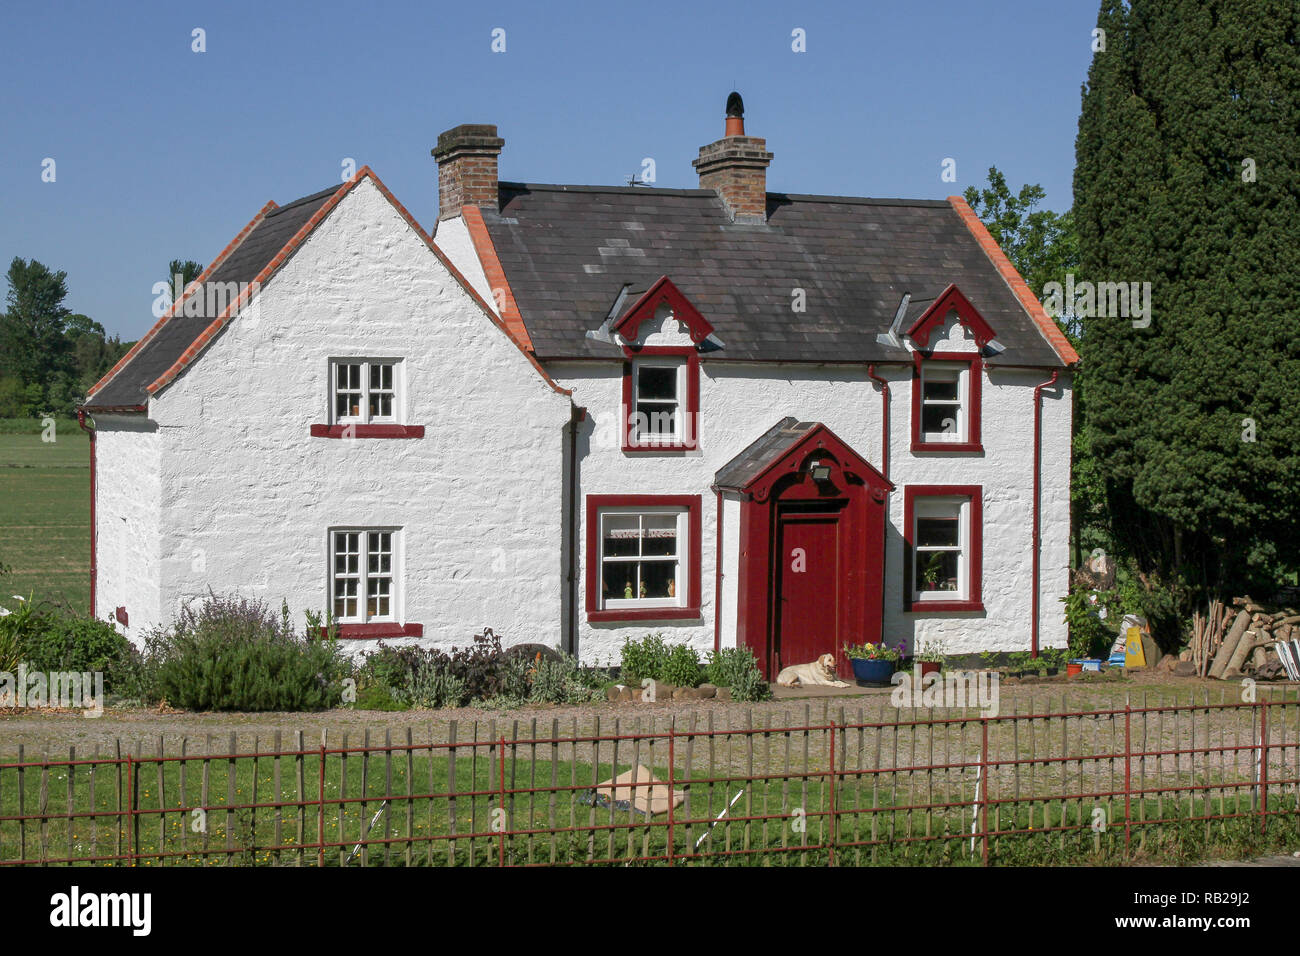 Two story canal lock house. The whitewashed lock keepers house is on the Newry Canal, Northern Ireland and is known as Moneypenny's Lock. - Stock Image